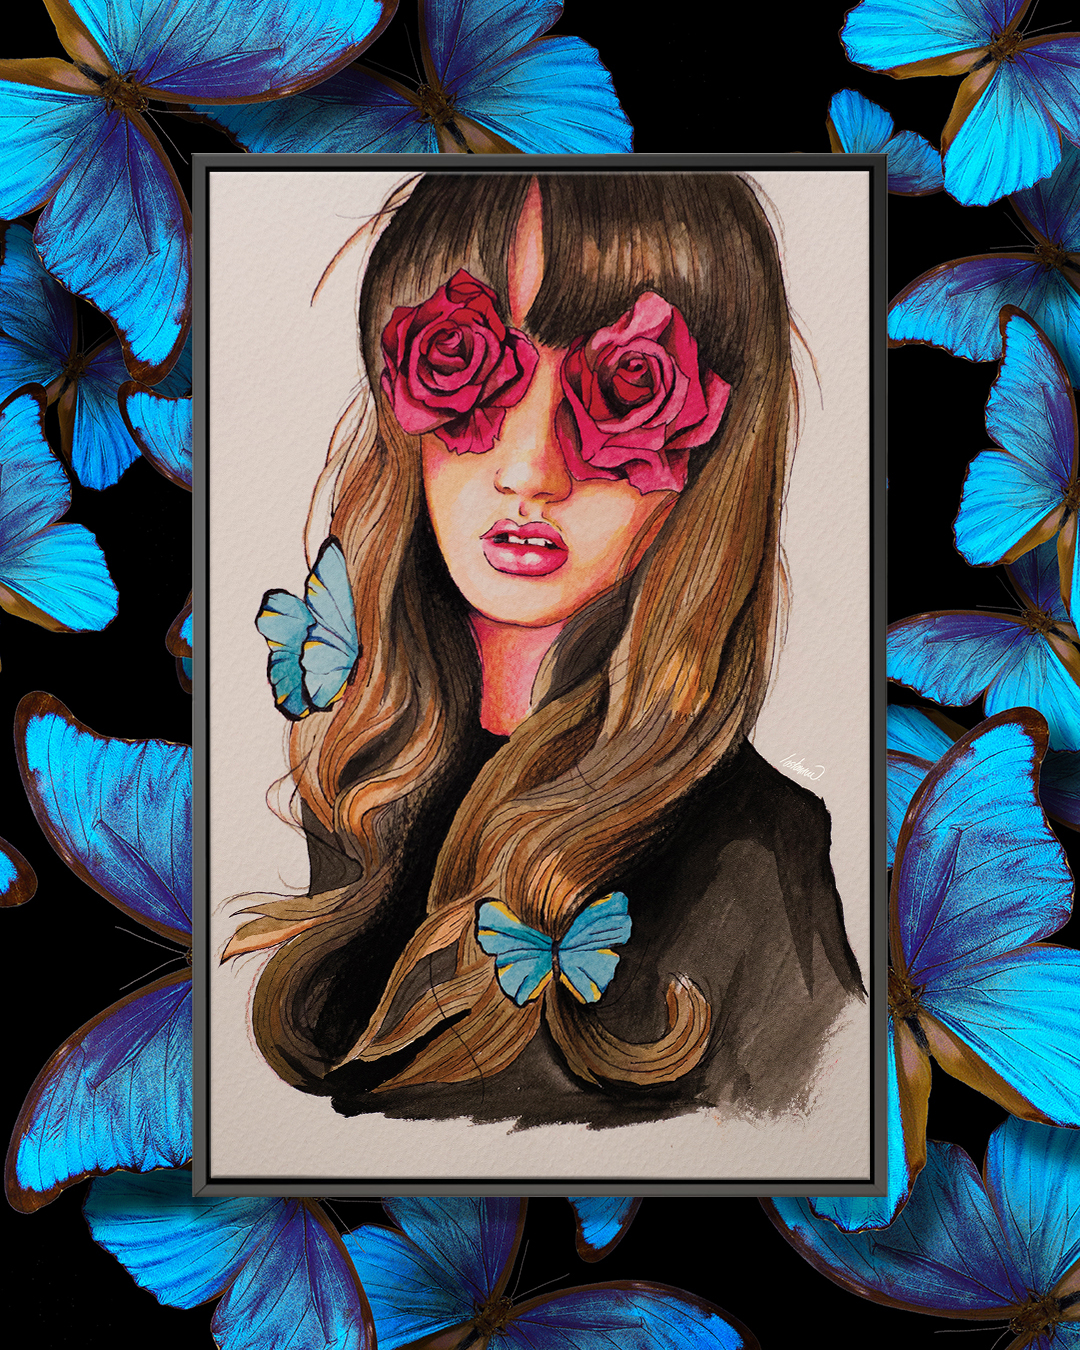 """""""Girl Flower Eyes Paint"""" by Lostanaw shows a girl with pink roses covering her eyes and blue butterflies in her brown hair."""